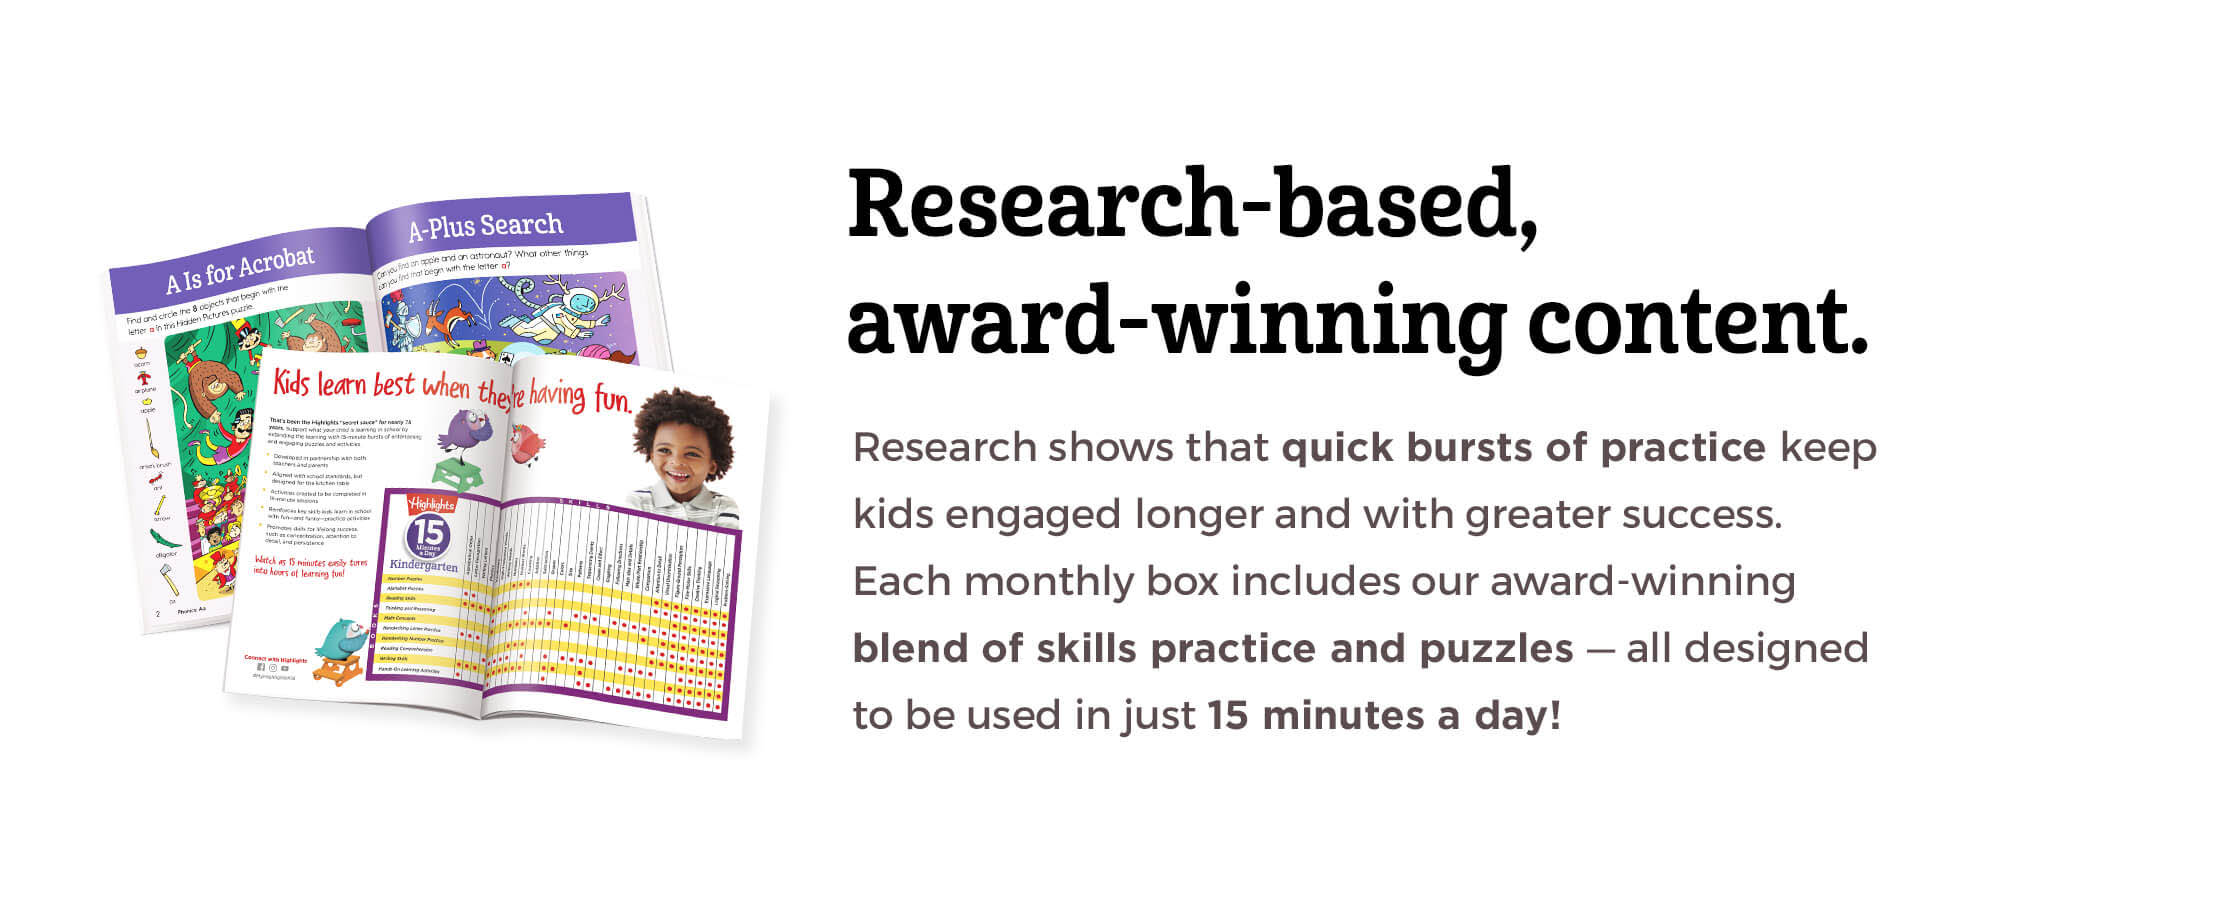 Research-based, award-winning content.